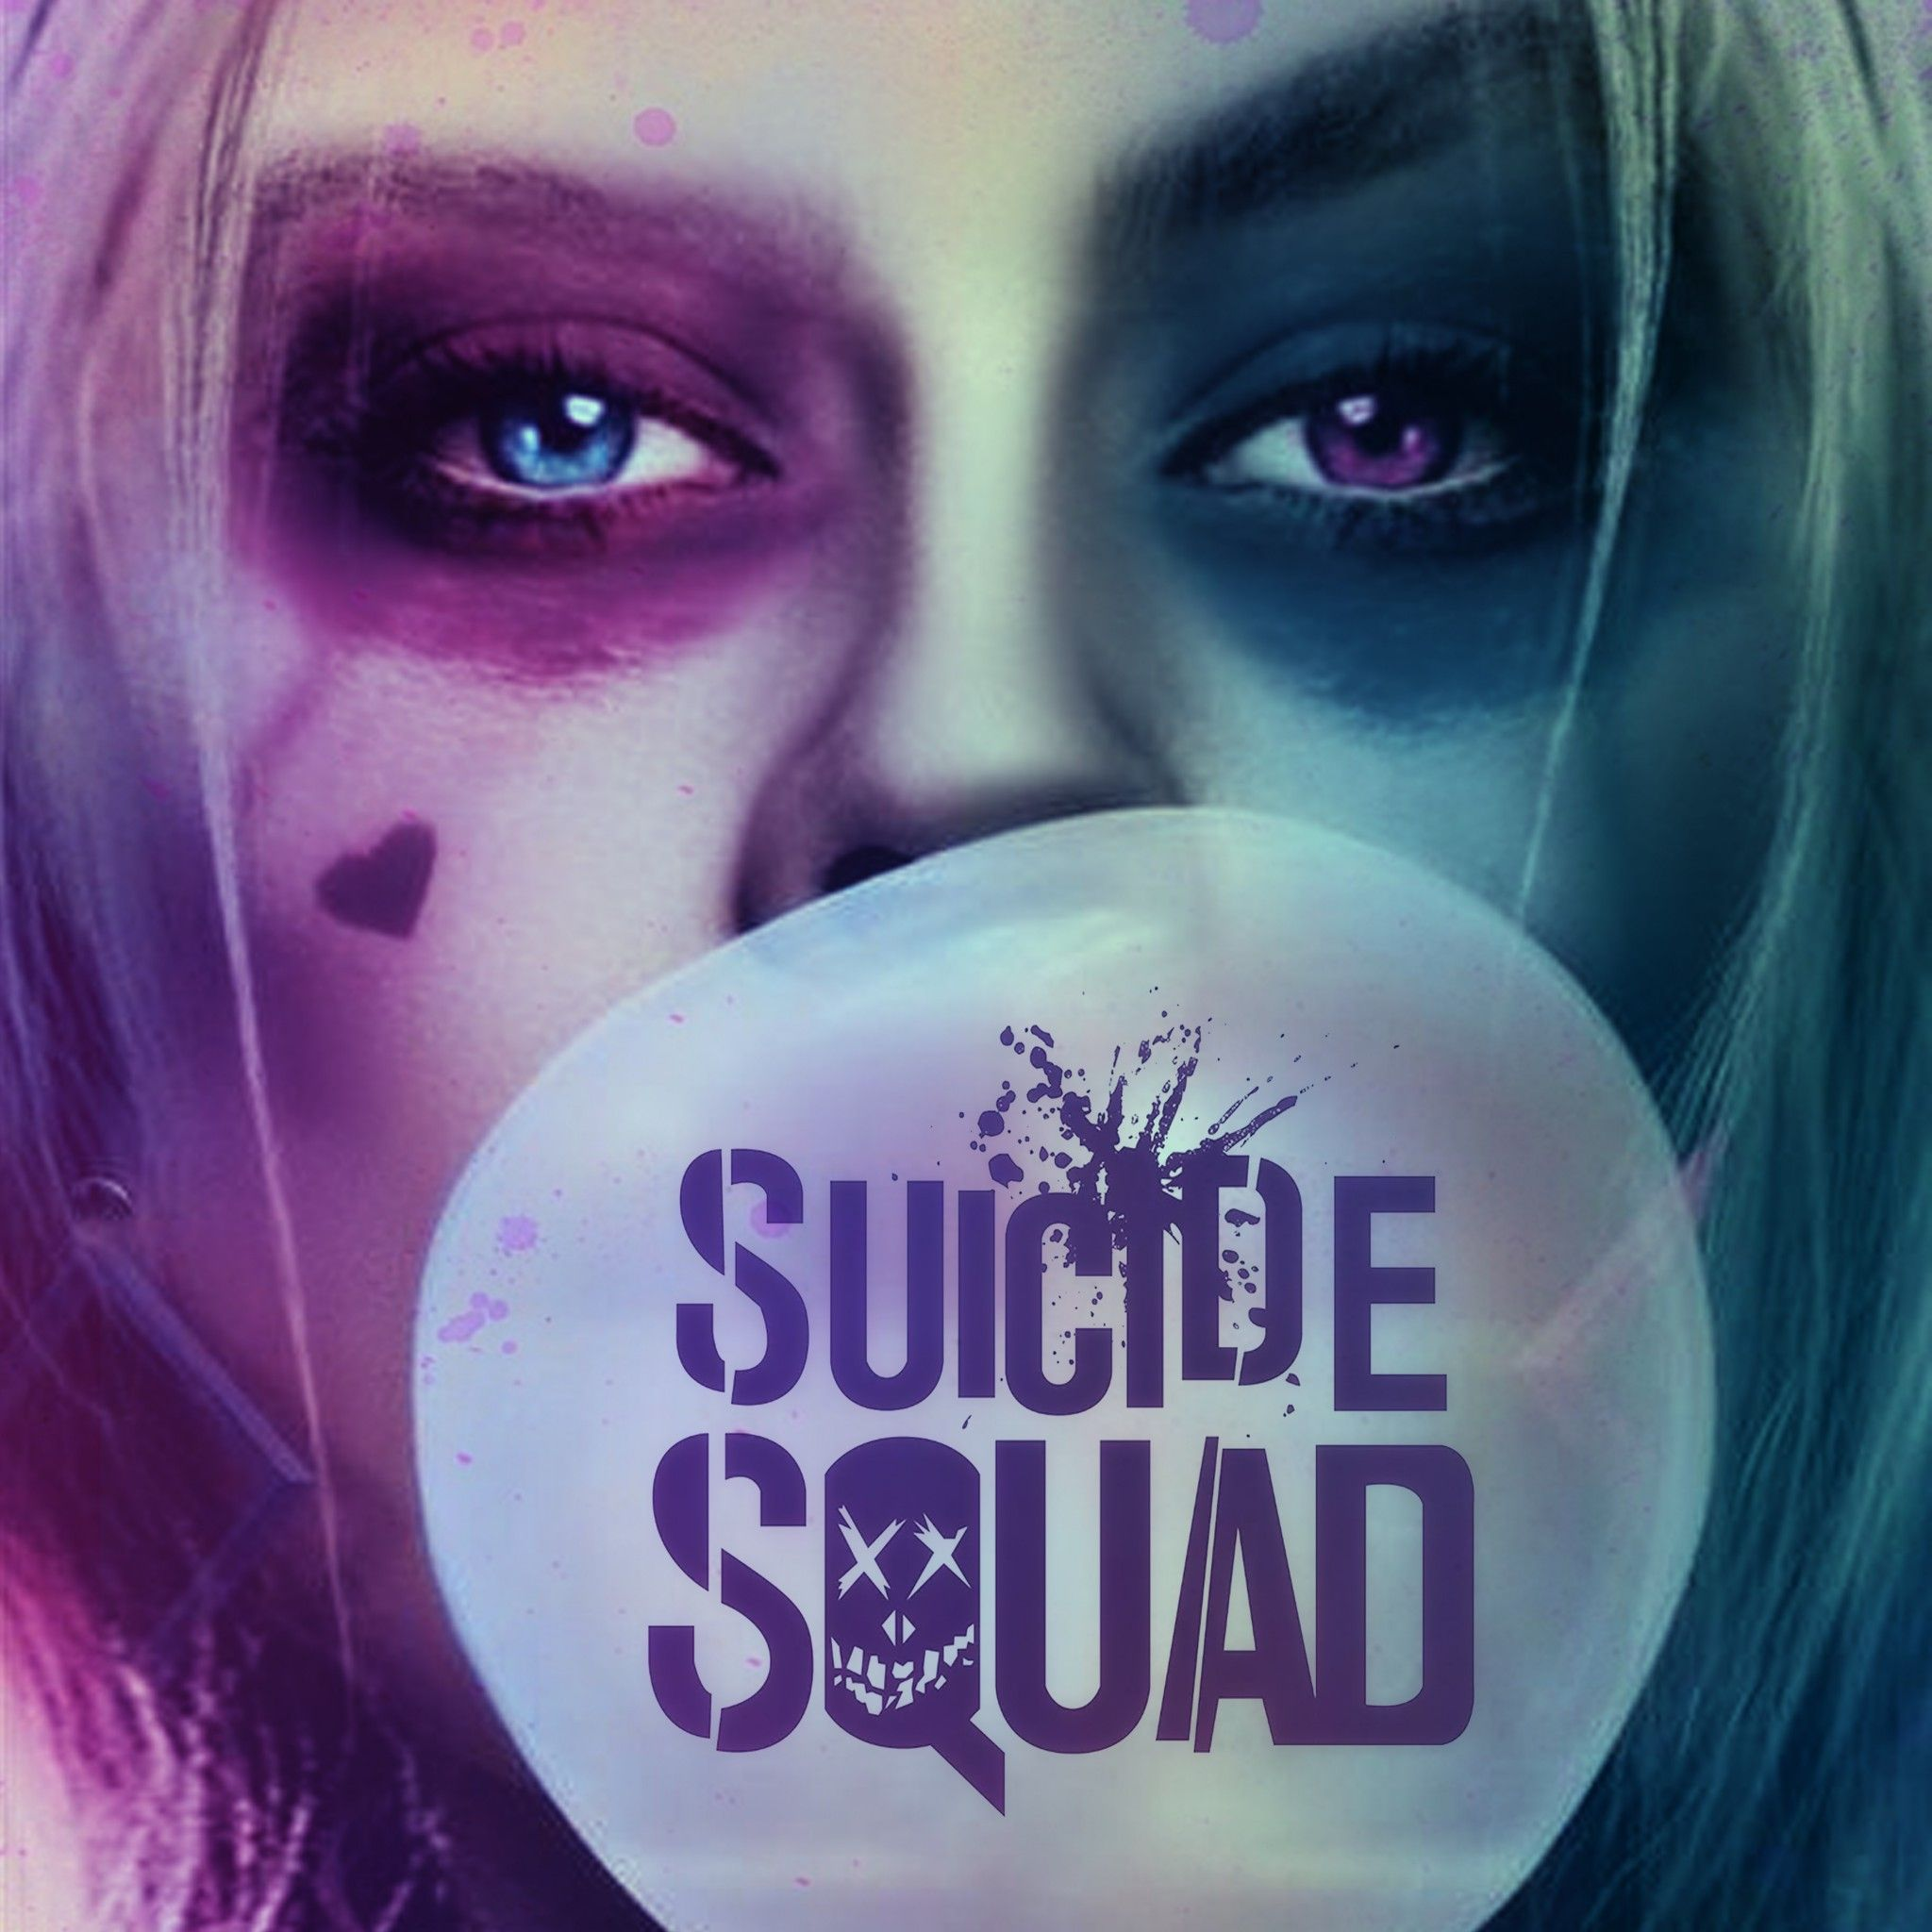 Suicide Squad Tap to see more Suicide Squad Wallpapers